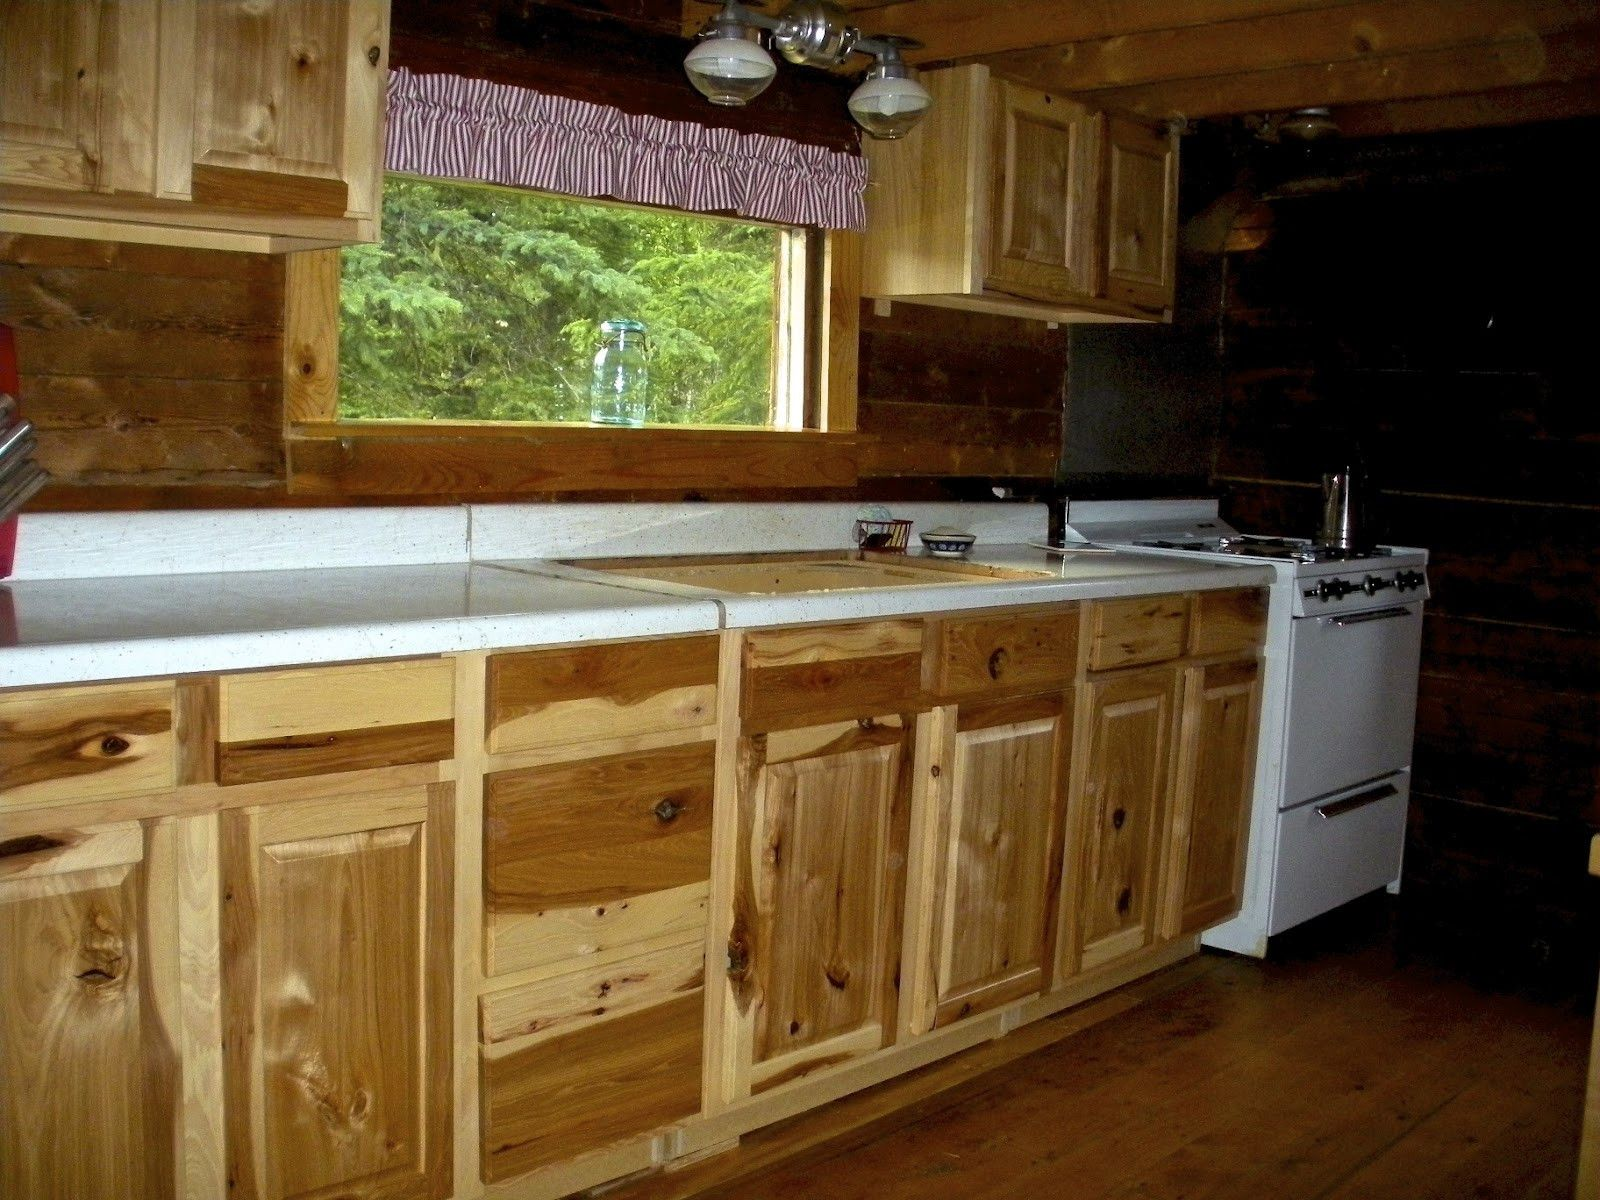 77 Hickory Kitchen Cabinet Doors Kitchen Decorating Ideas Themes